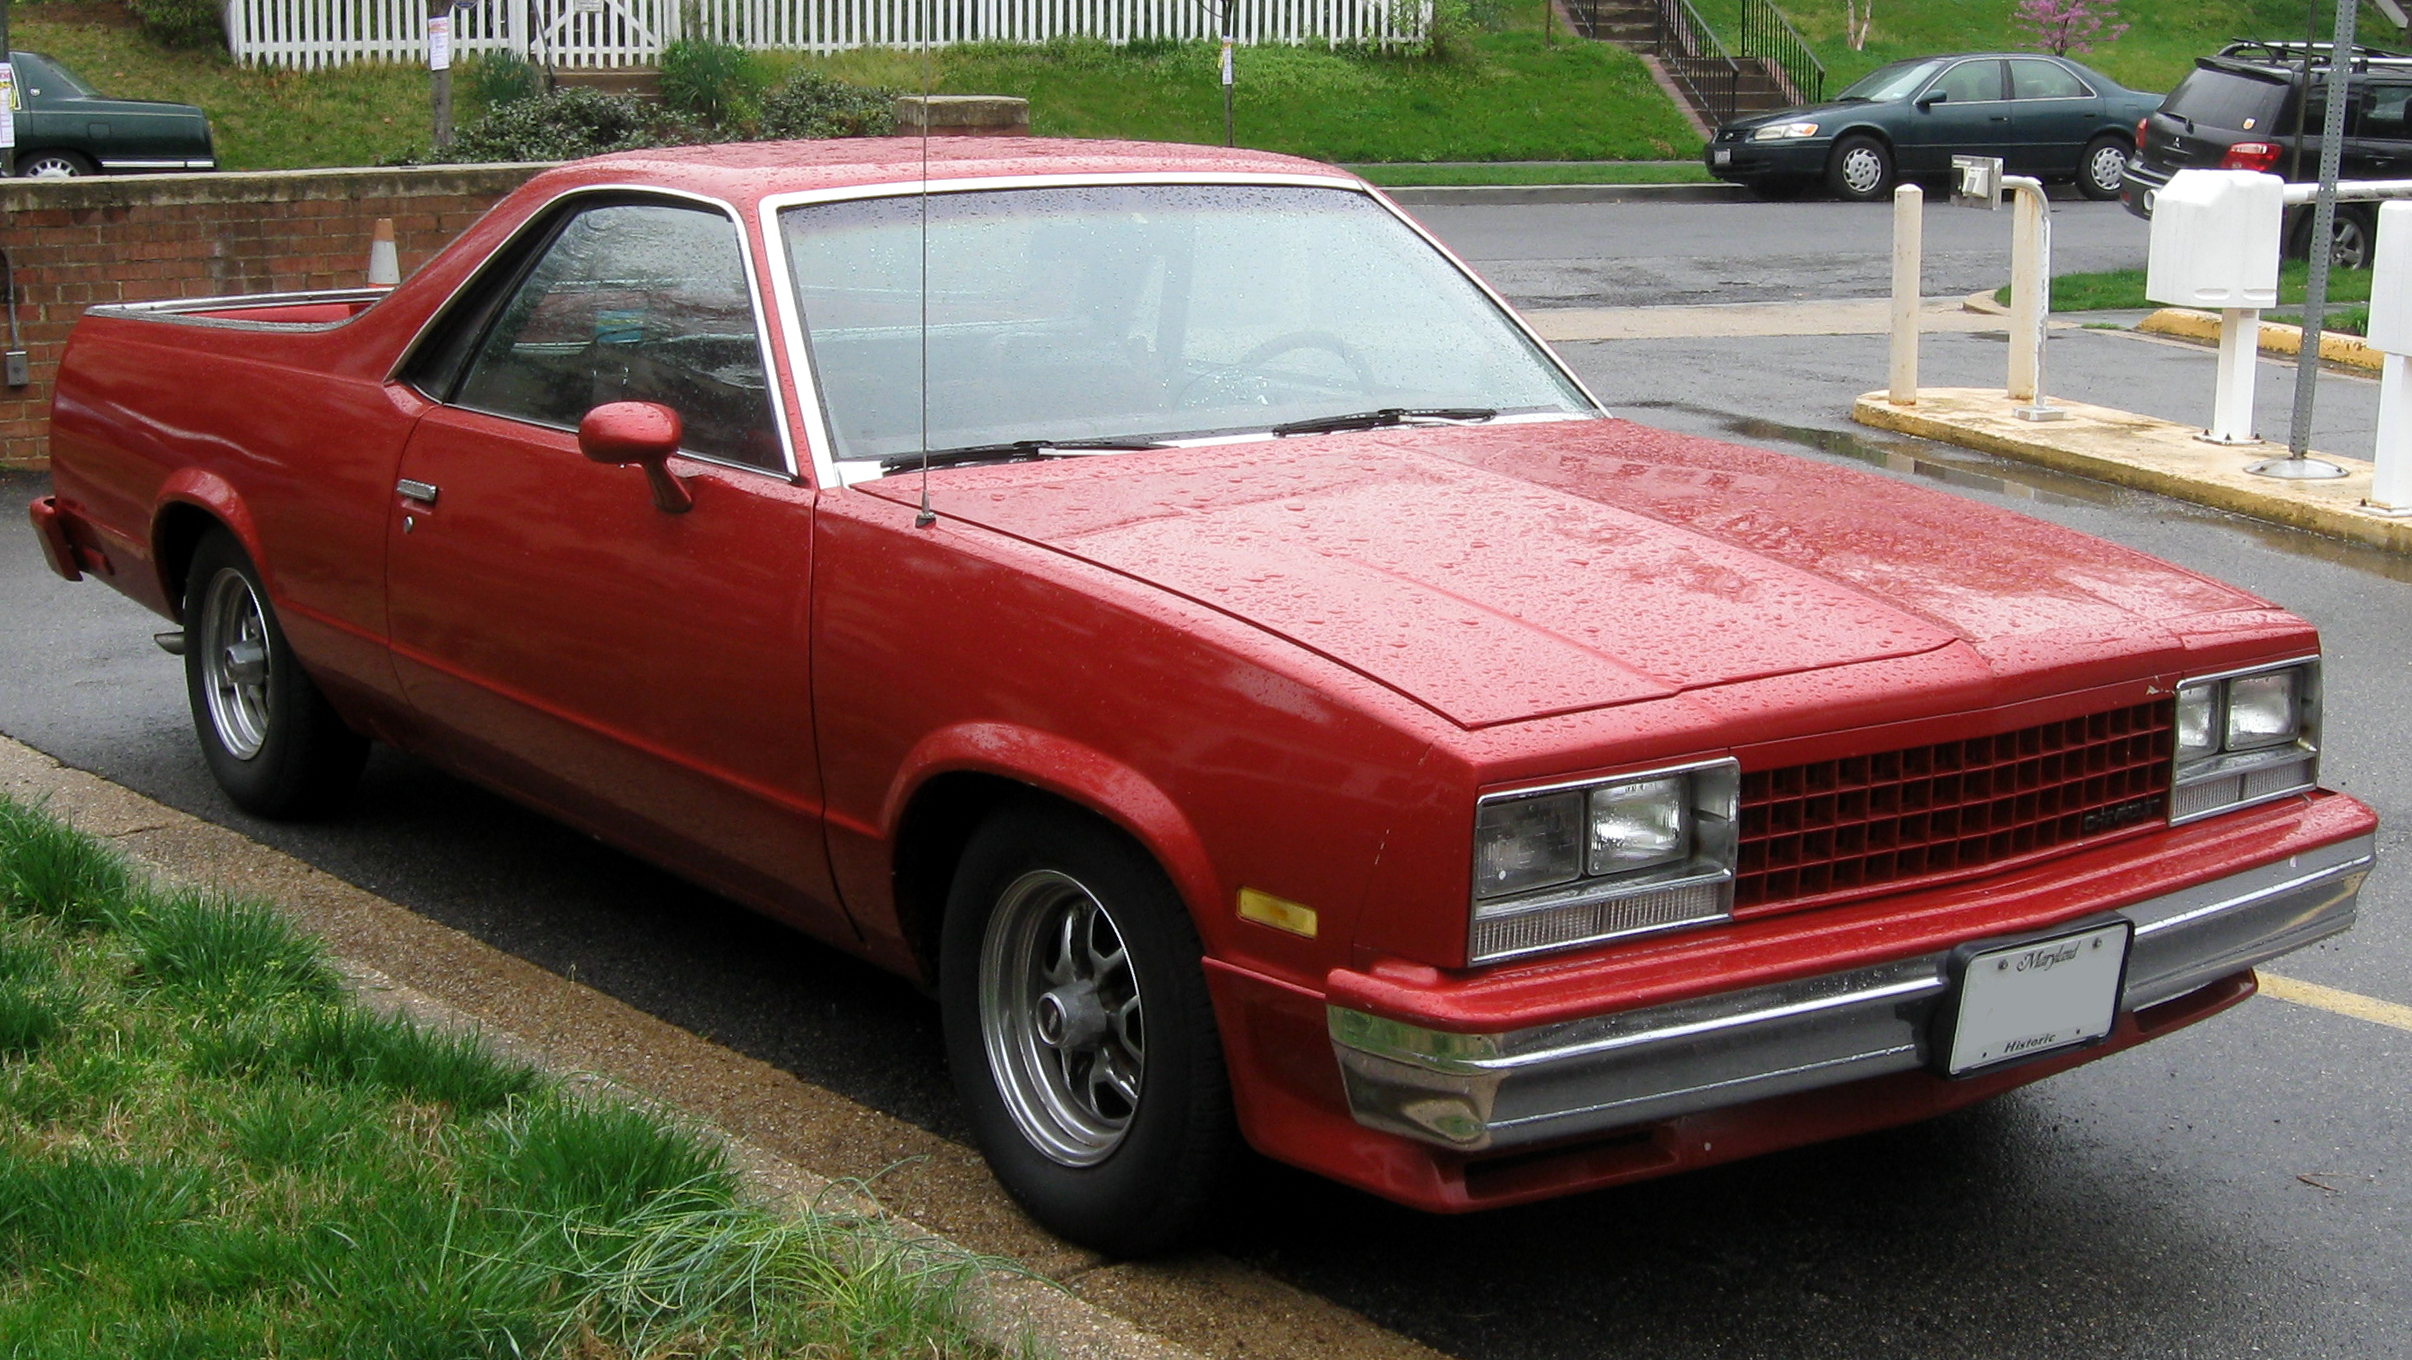 File:Chevrolet El Camino -- 03-24-2012.JPG - Wikimedia Commons